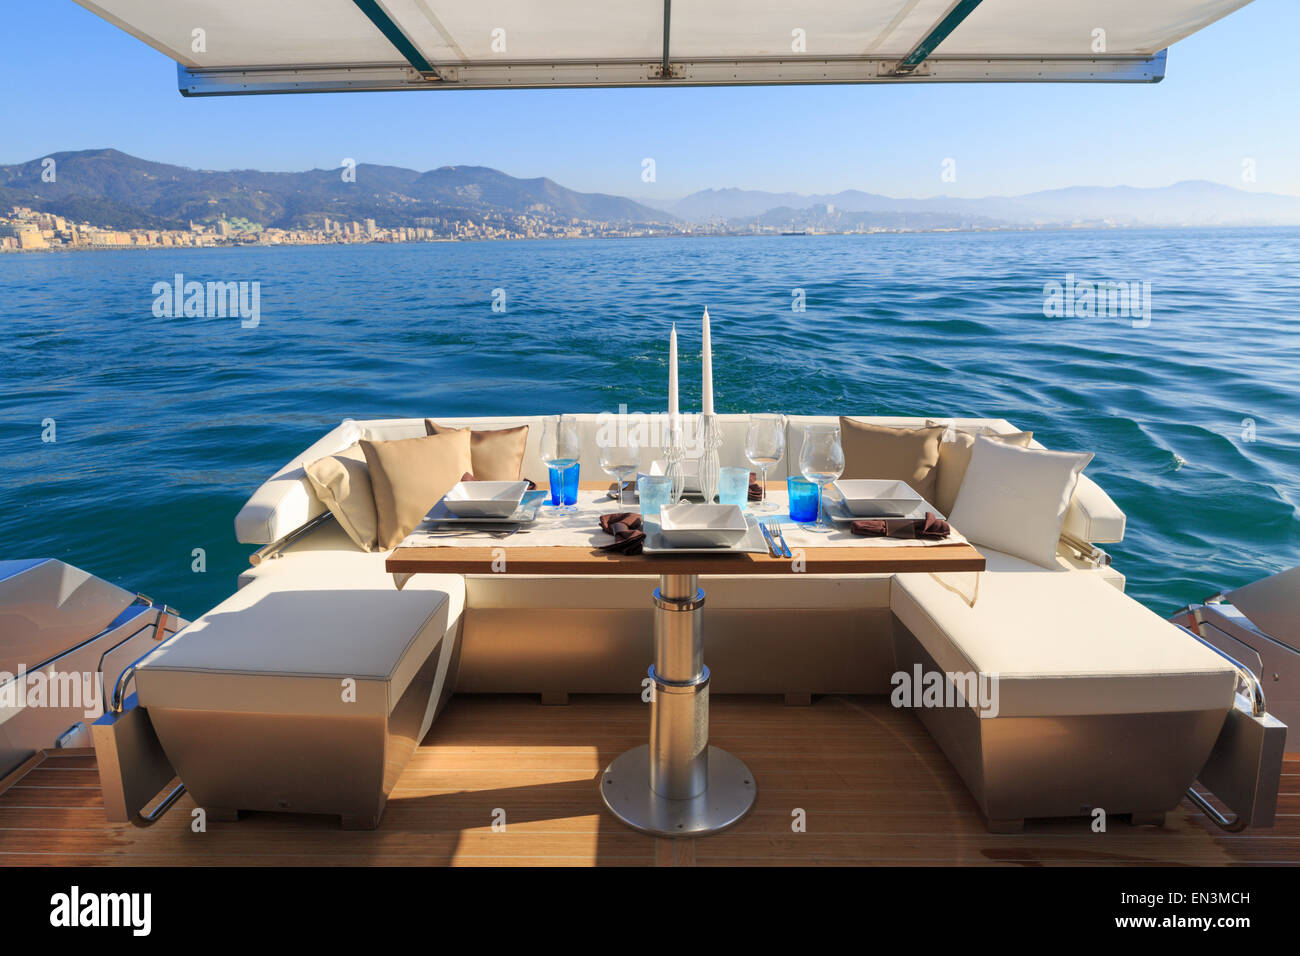 lunch on motor yacht, Table setting at a luxury yacht. - Stock Image